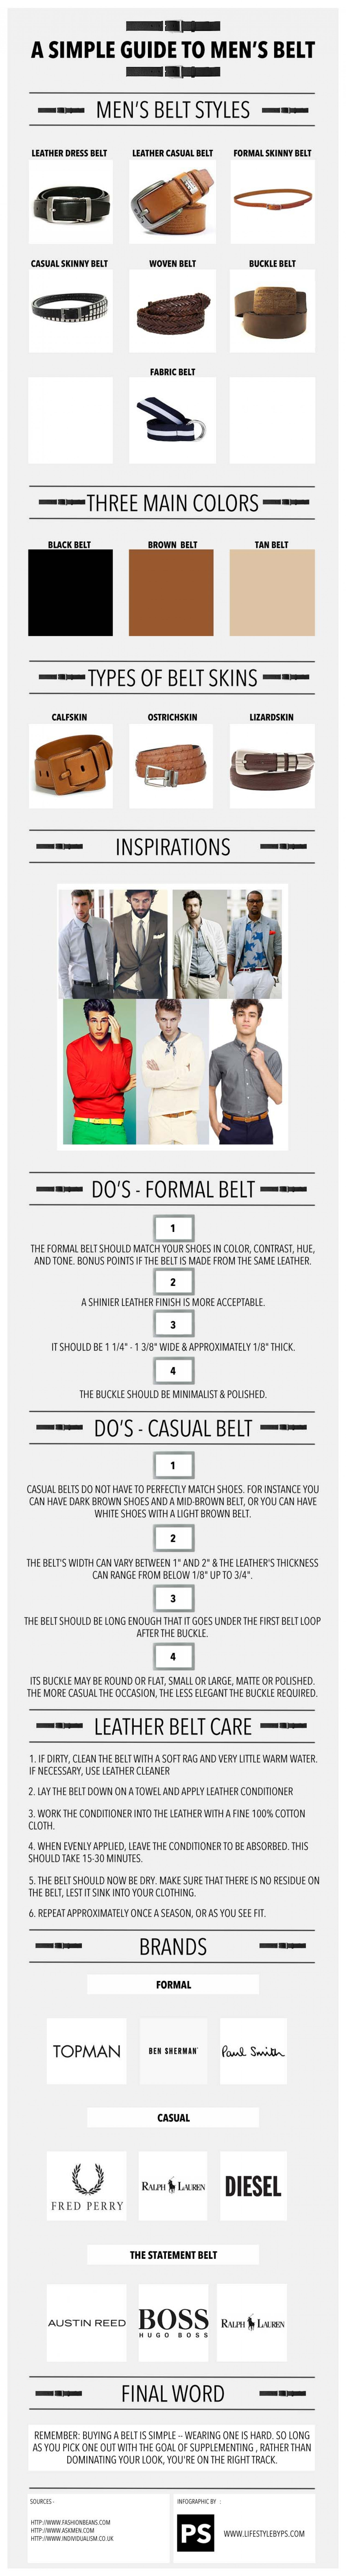 A Simple Guide to Men's Belt - Infographic Infographic